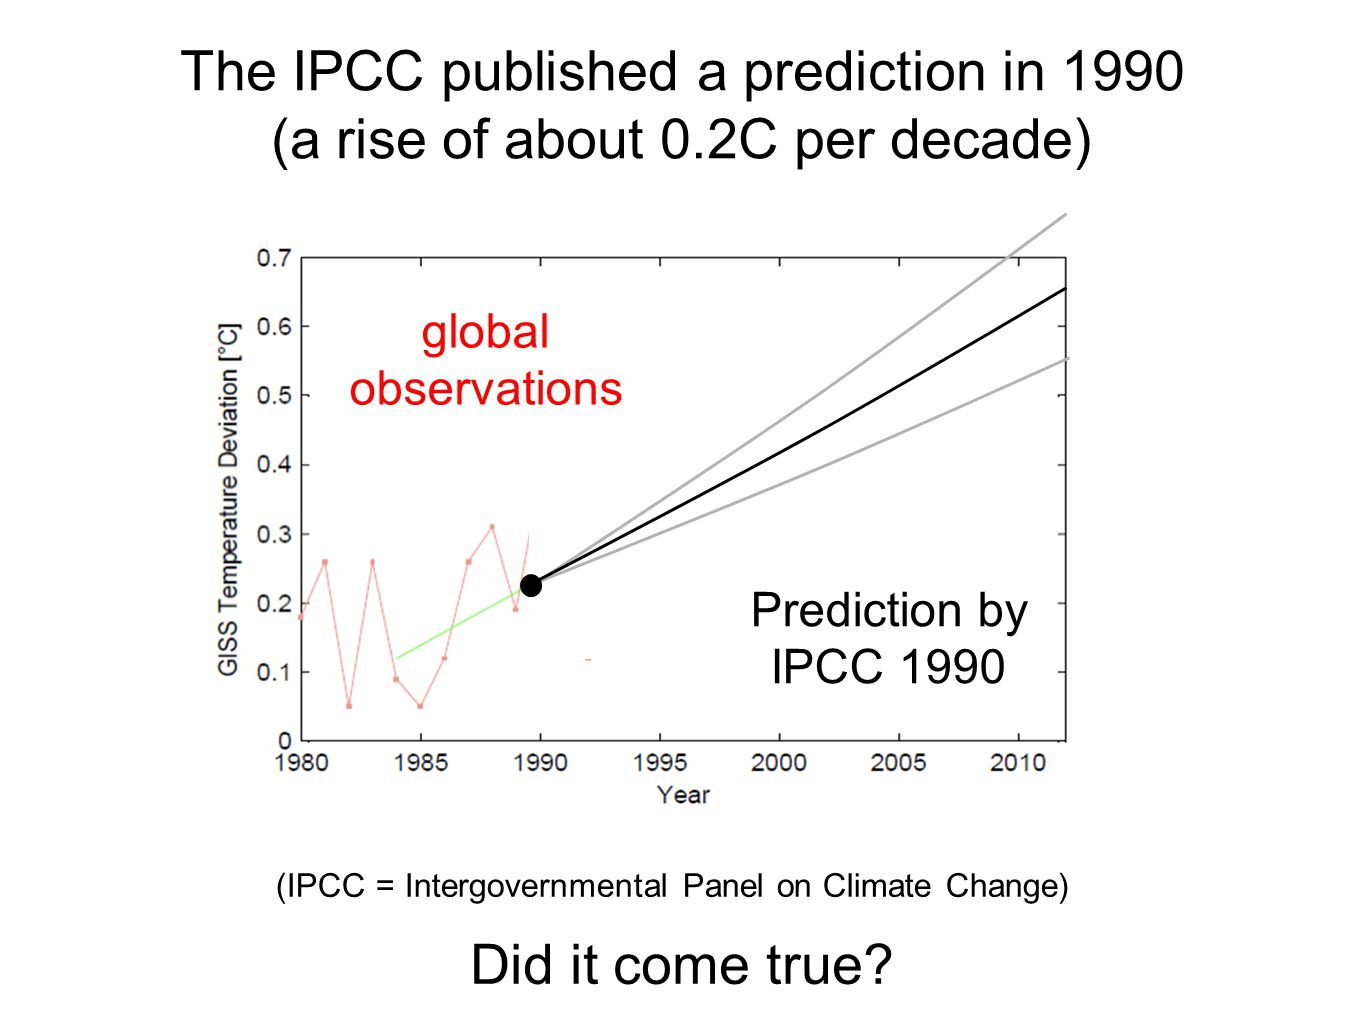 (IPCC = Intergovernmental Panel on Climate Change) The IPCC published a prediction in 1990 (a rise of about 0.2C per decade) Prediction by IPCC 1990 global observations Did it come true?